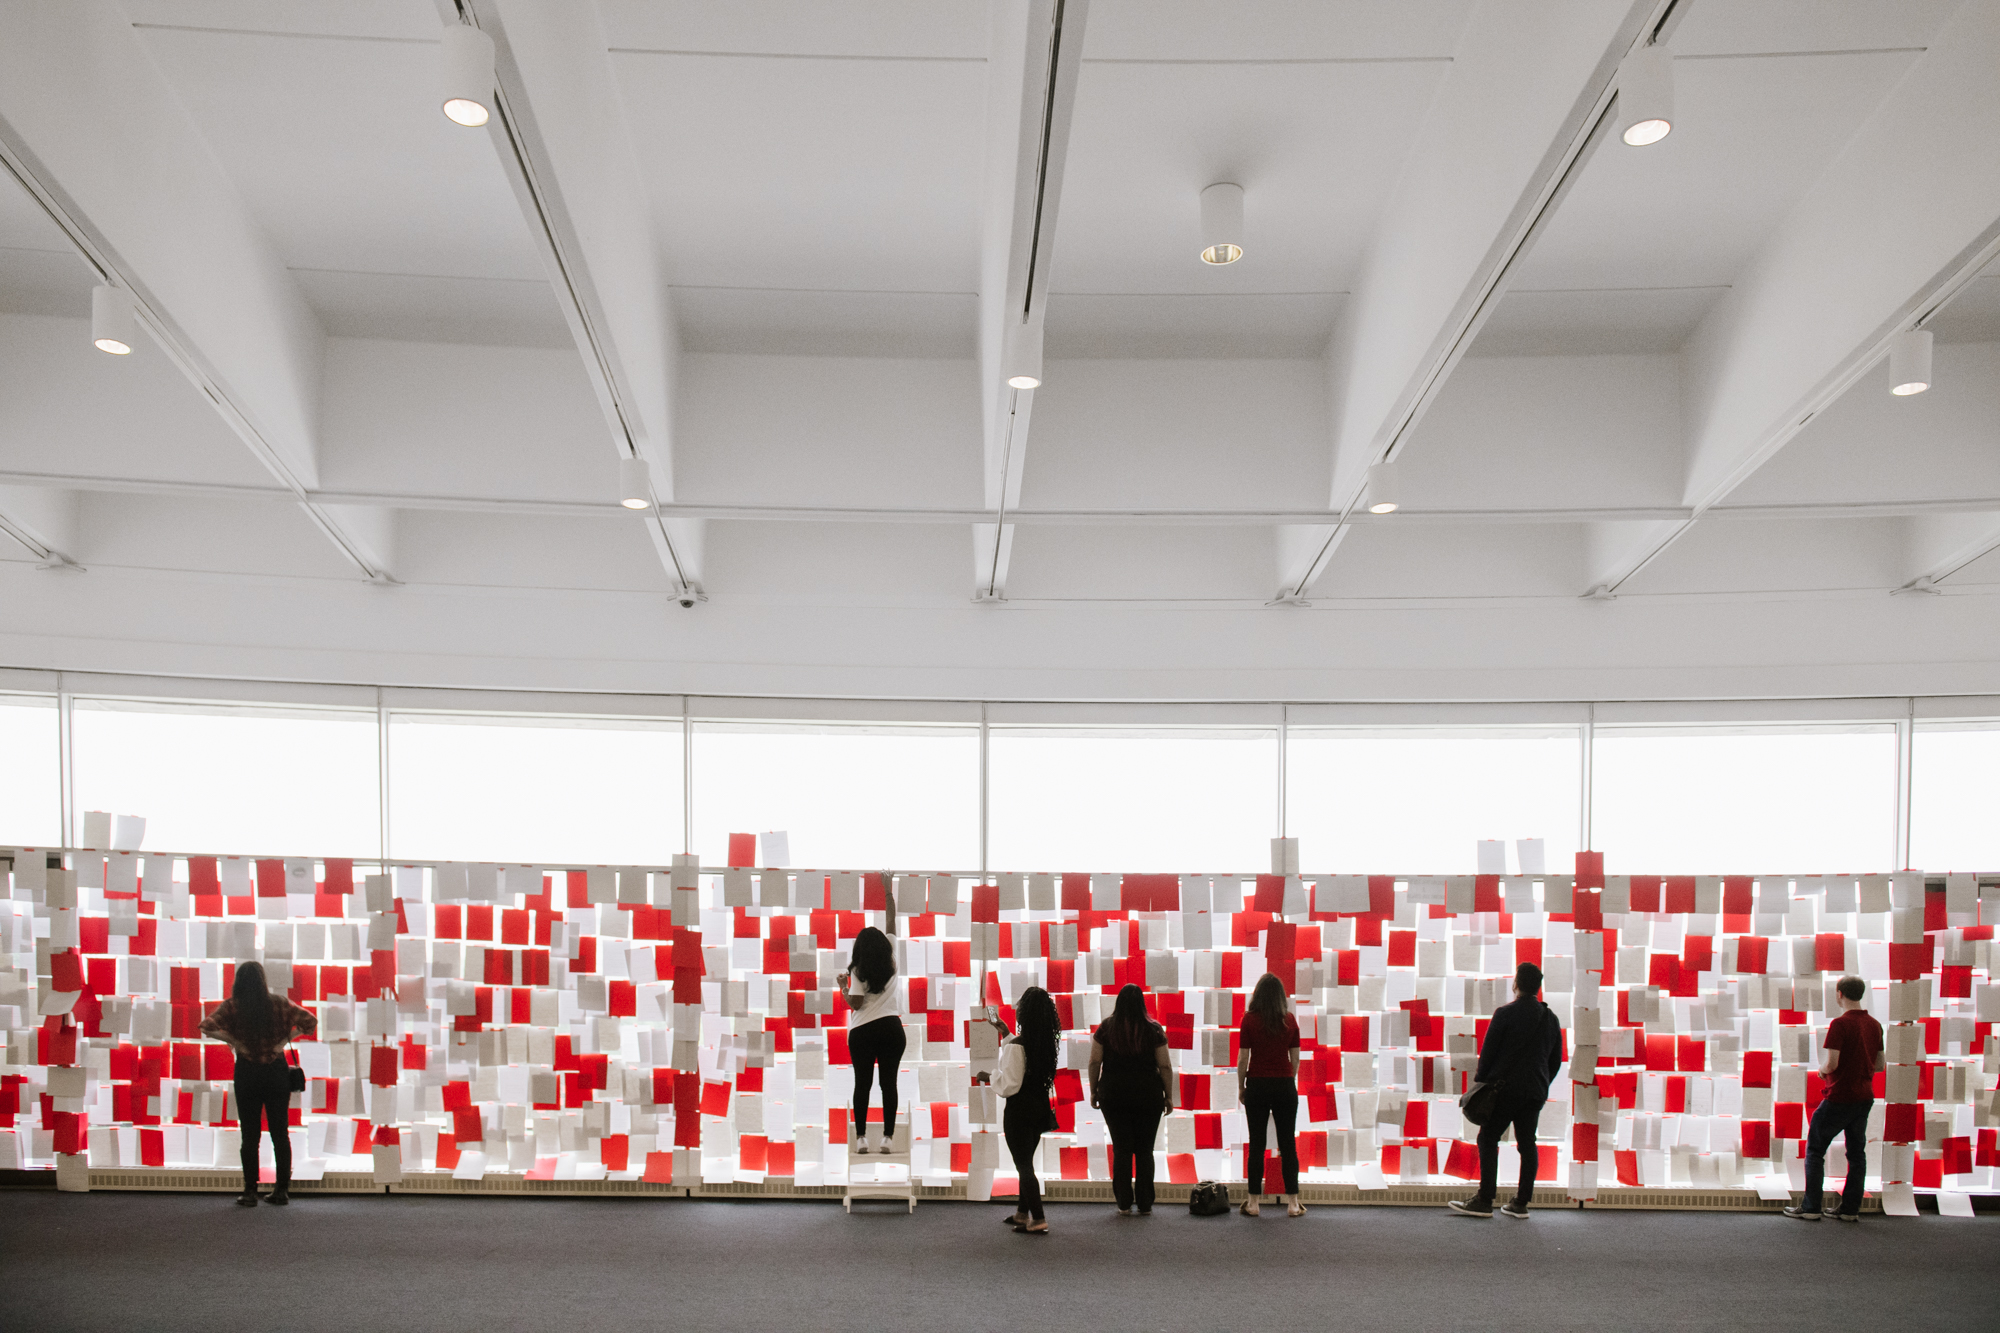 Installation view at the Hirshhorn Museum, Washington, DC in the Lerner Room which has windows and sweeping views overlooking the National Archives Building on the National Mall.